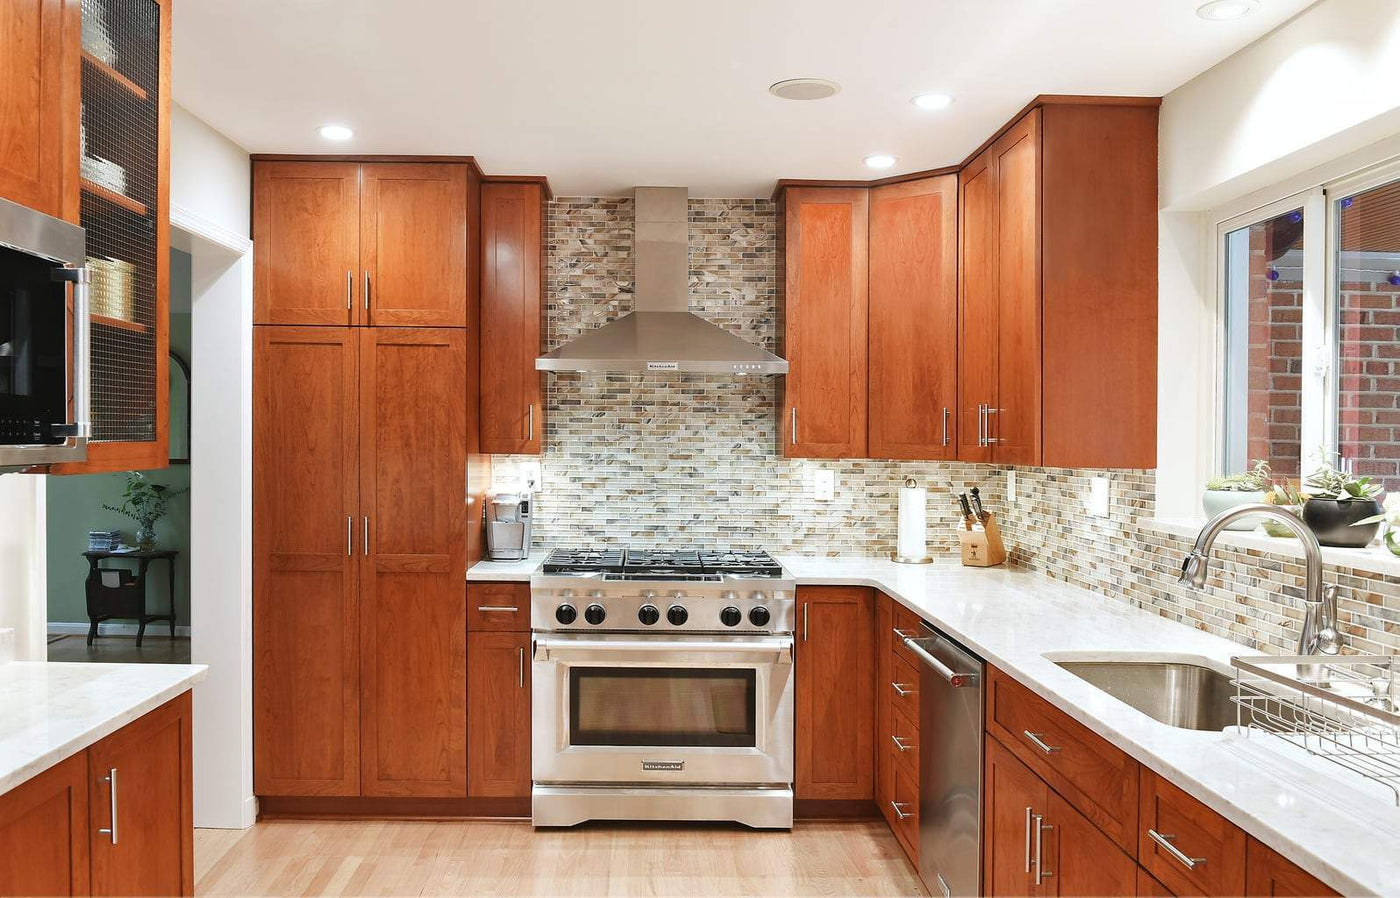 Shaker Style Cabinet Doors Offer Multiple Design Choices